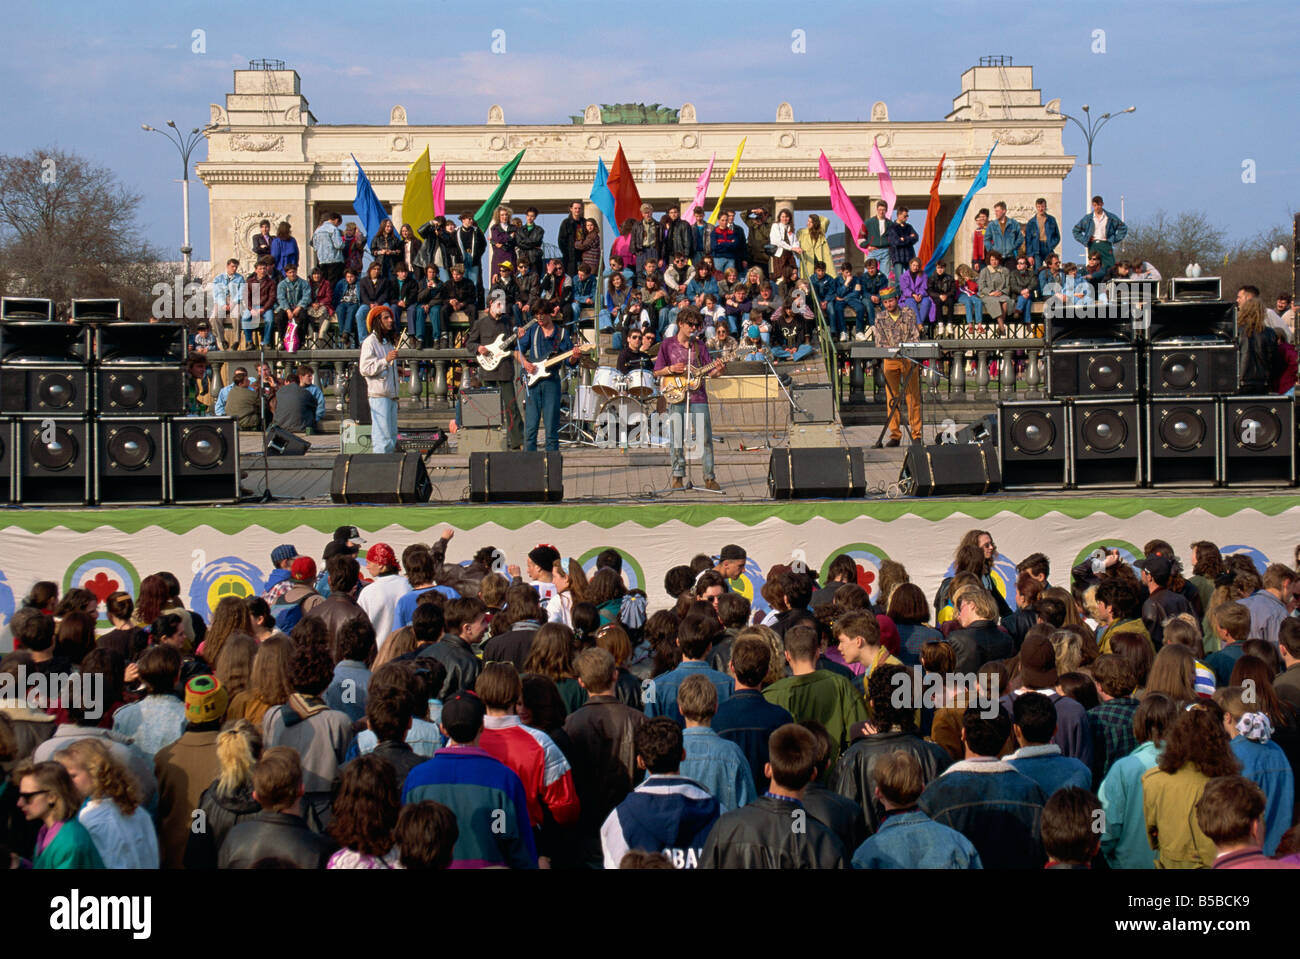 Crowds at a concert during the Earth Day Festival in Gorky Park in Moscow Russia G Hellier - Stock Image